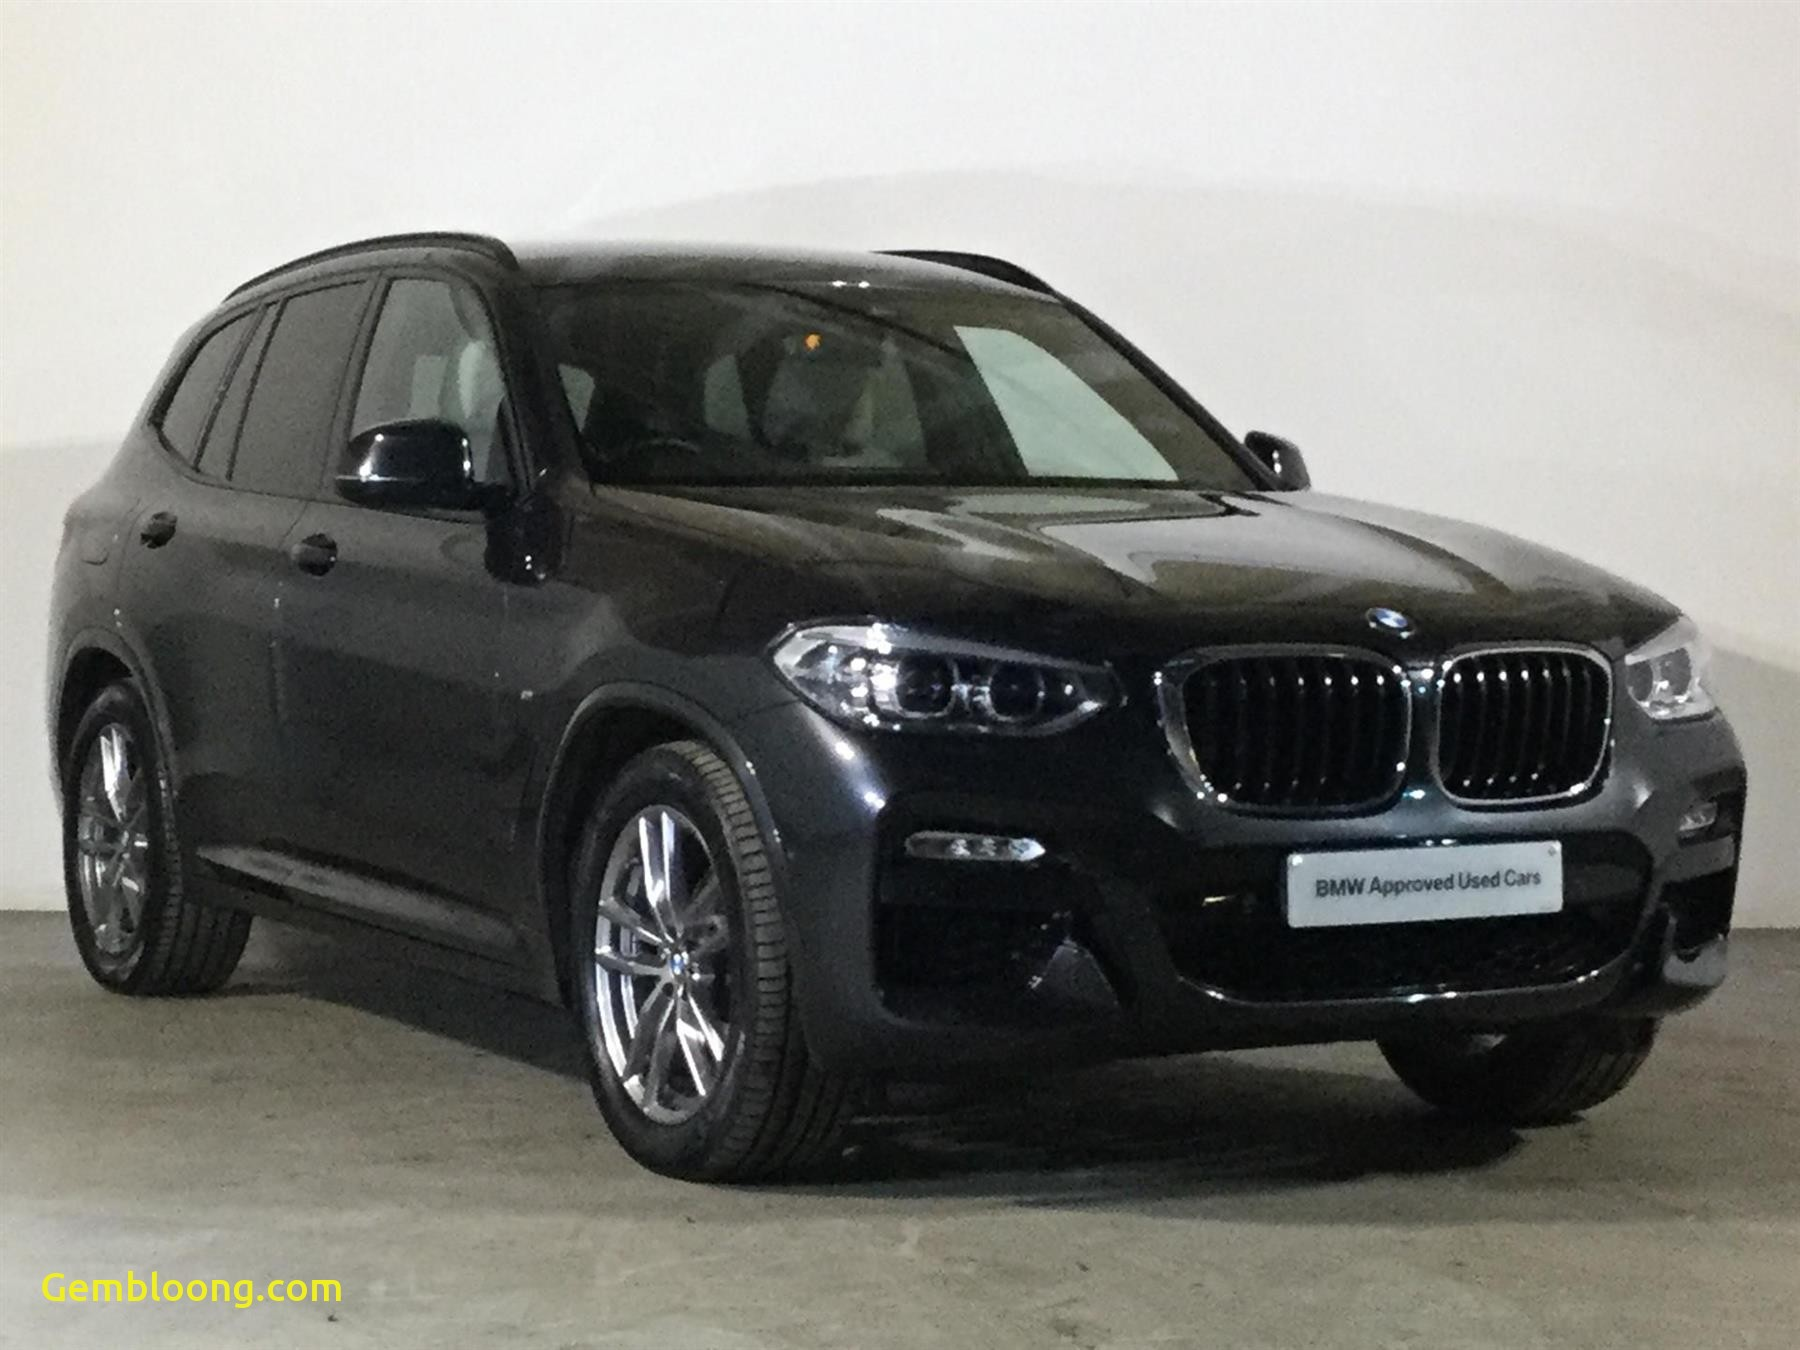 Used Bmw X3 Awesome Used 2019 Bmw X3 G01 X3 Xdrive20d M Sport Za B47 2 0d for